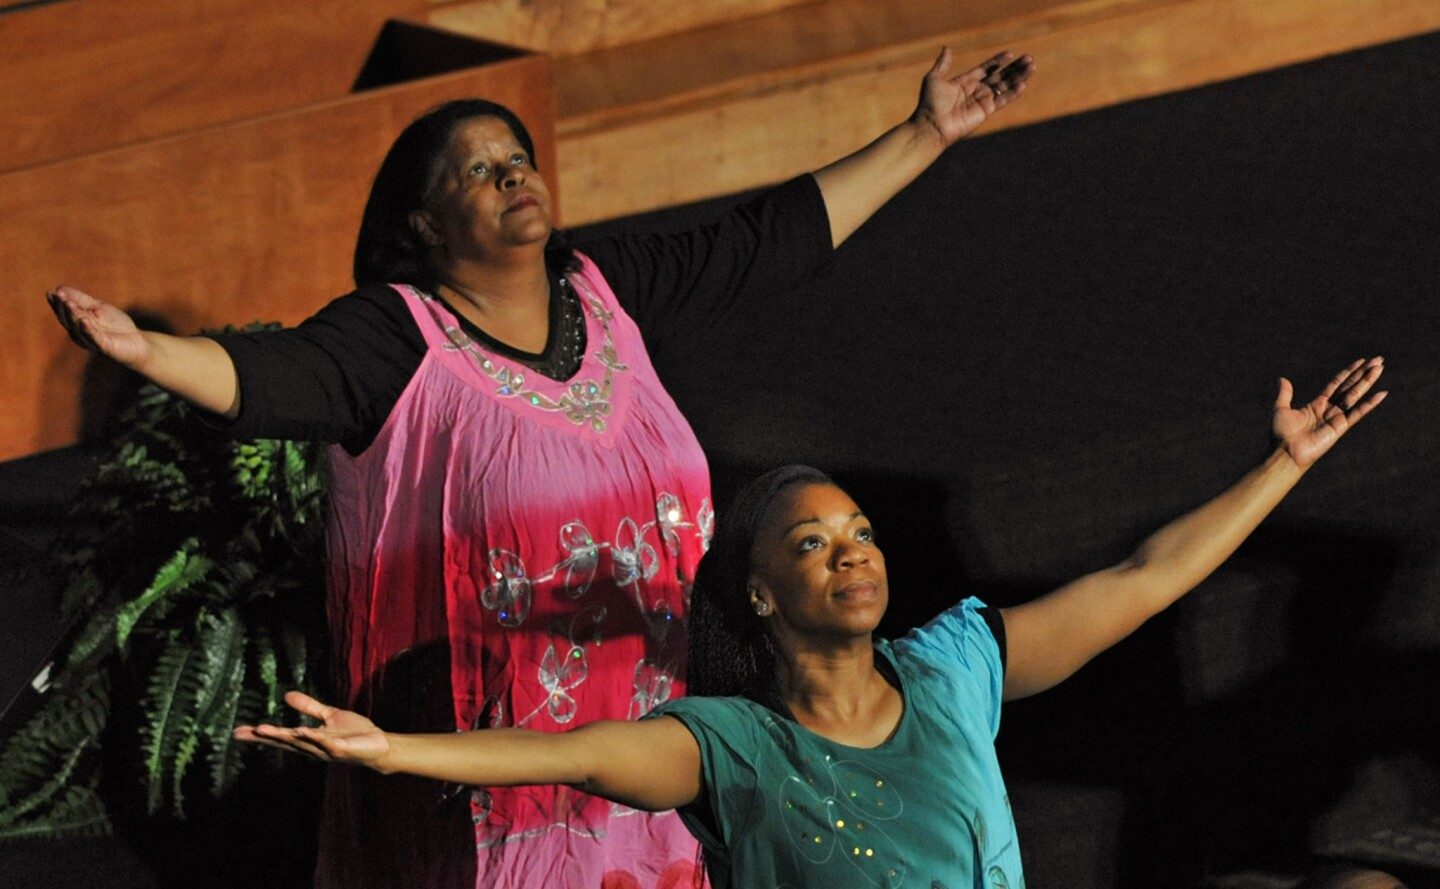 Two members of the New Psalmist Prophetic Praise Dance Ministry perform during the city-wide prayer service held Thursday night at the New Psalmist Baptist Church. Churches from all denominations came together in response to the riot and protests.